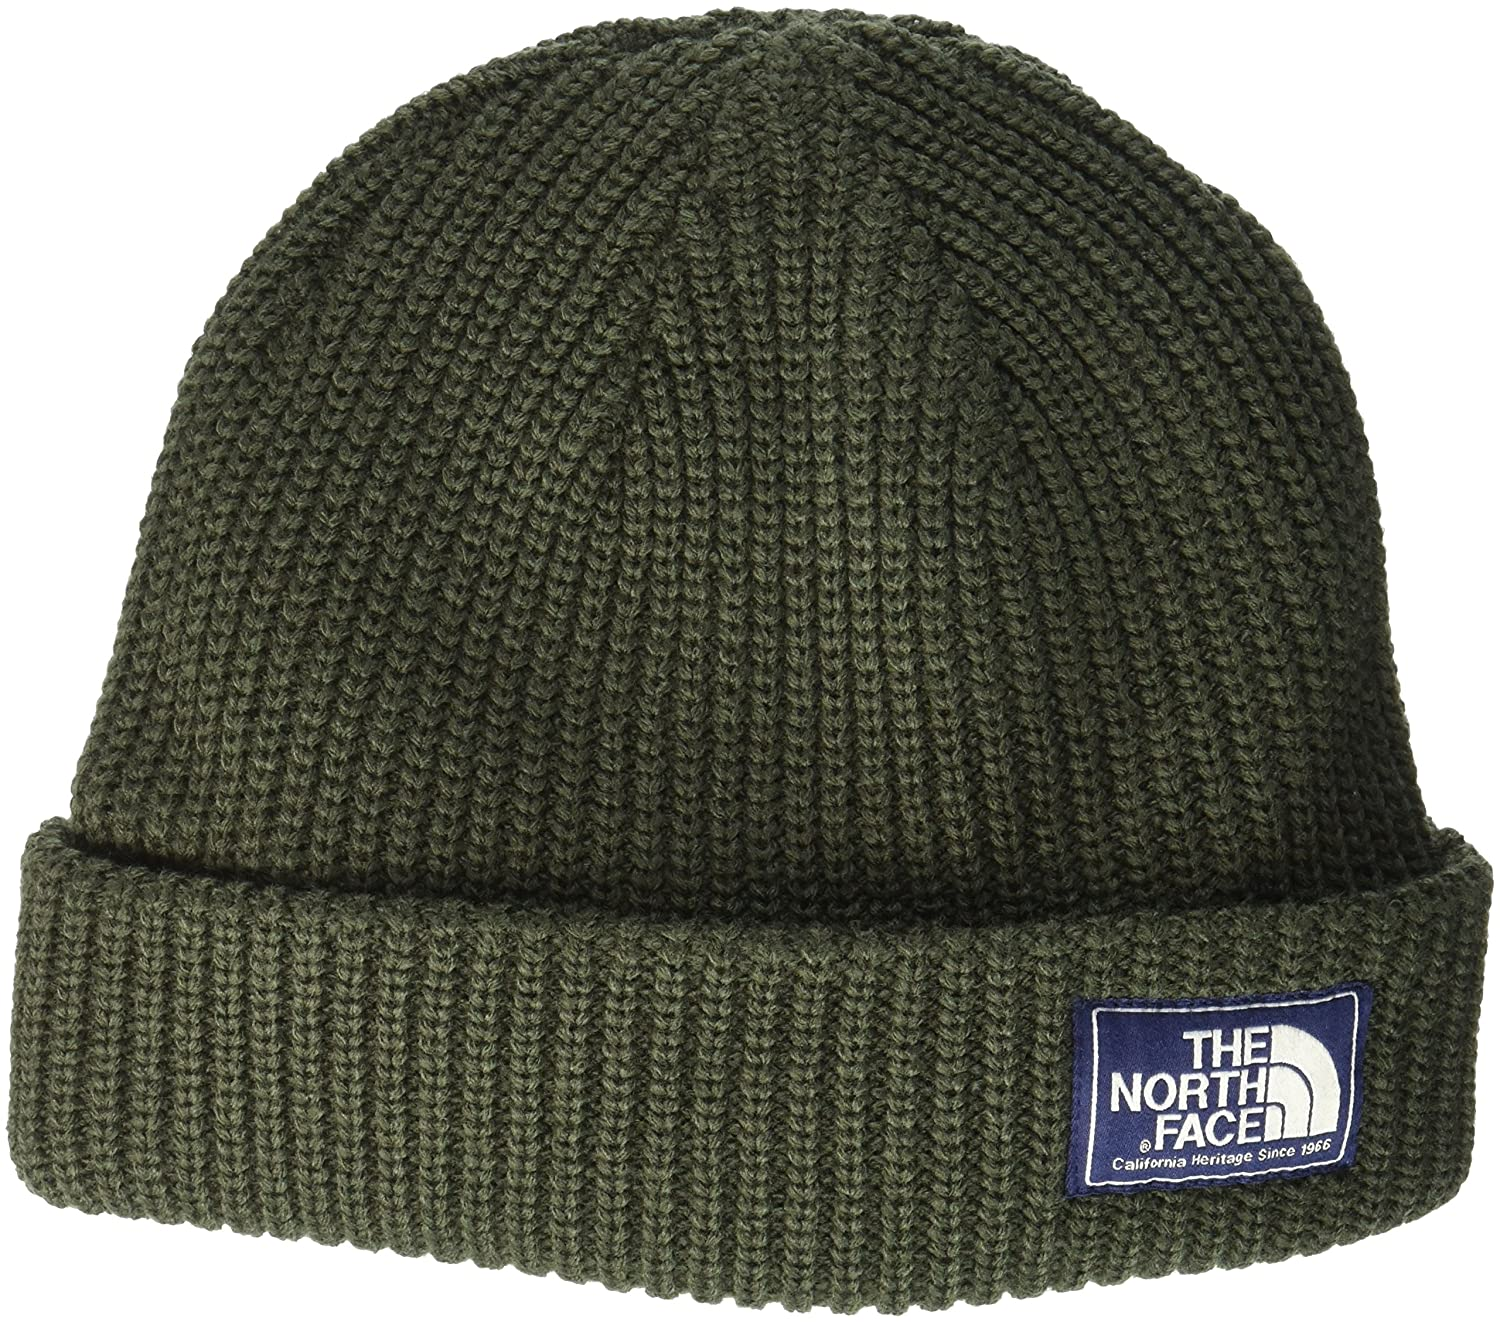 7616acb5cf9 The North Face Salty Dog Beanie at Amazon Men s Clothing store